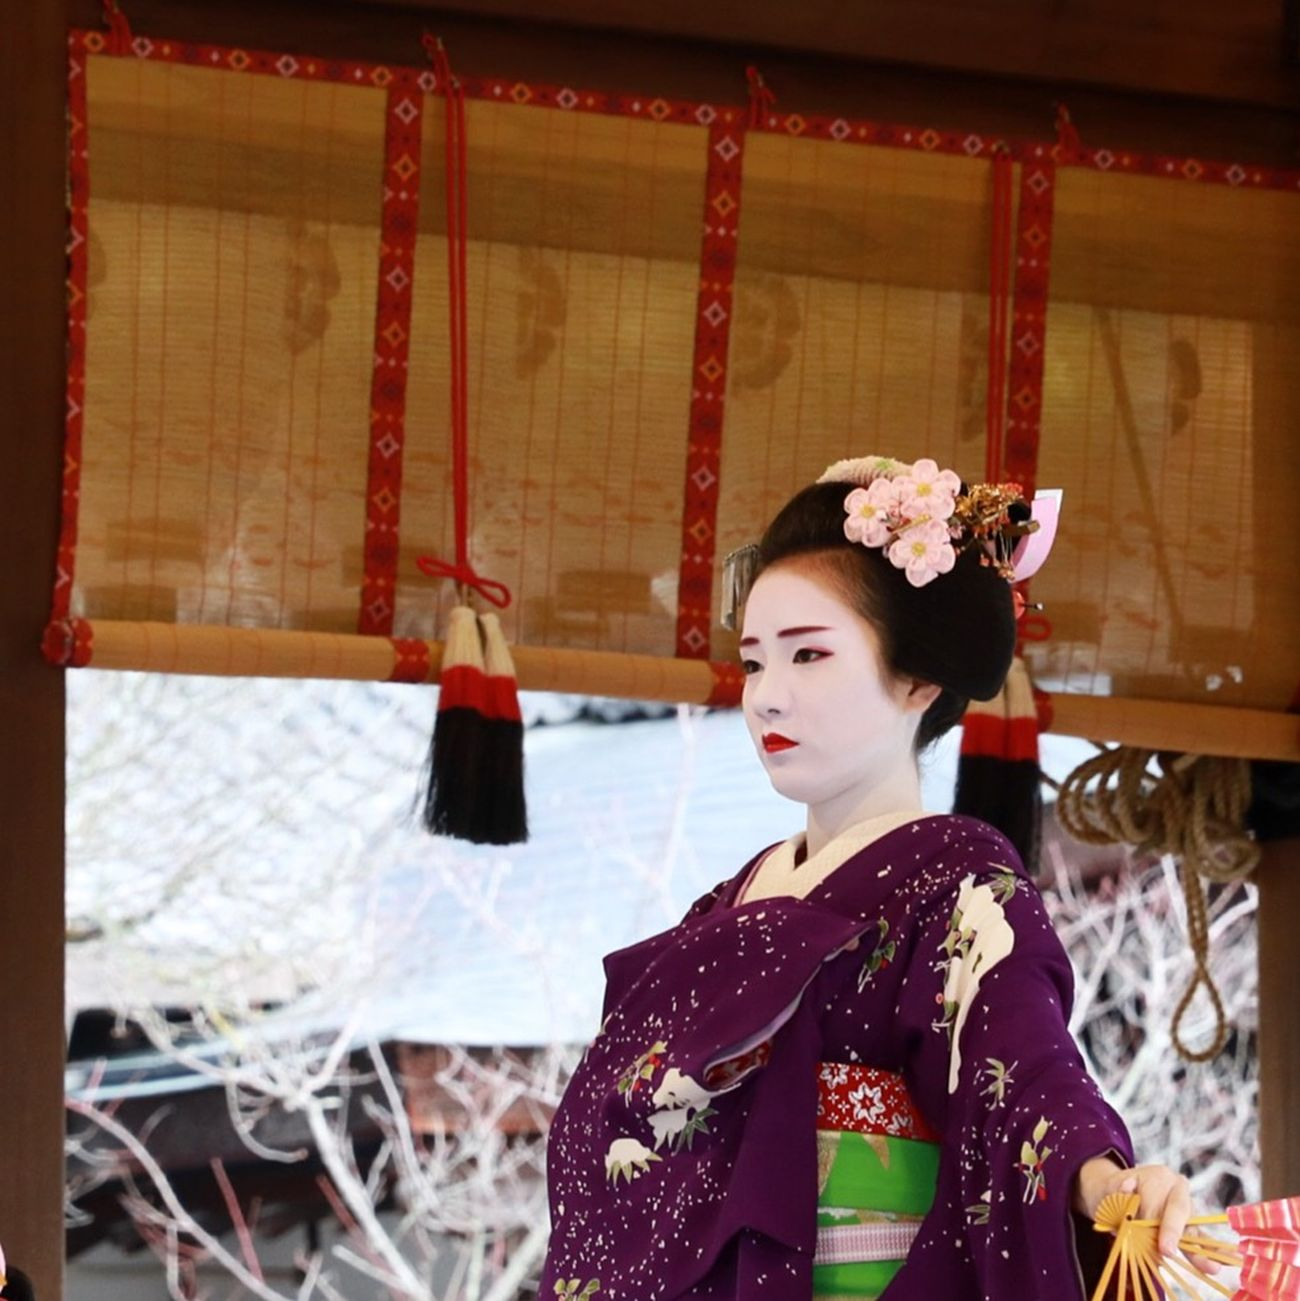 Maiko 八坂神社 節分祭 Kyoto EyeEm Best Shots OpenEdit Japan 京都 Tommy@collection Japanese Culture Japan Photography Japanese  Japanese Temple Japanese Style EyeEm Japan 舞妓